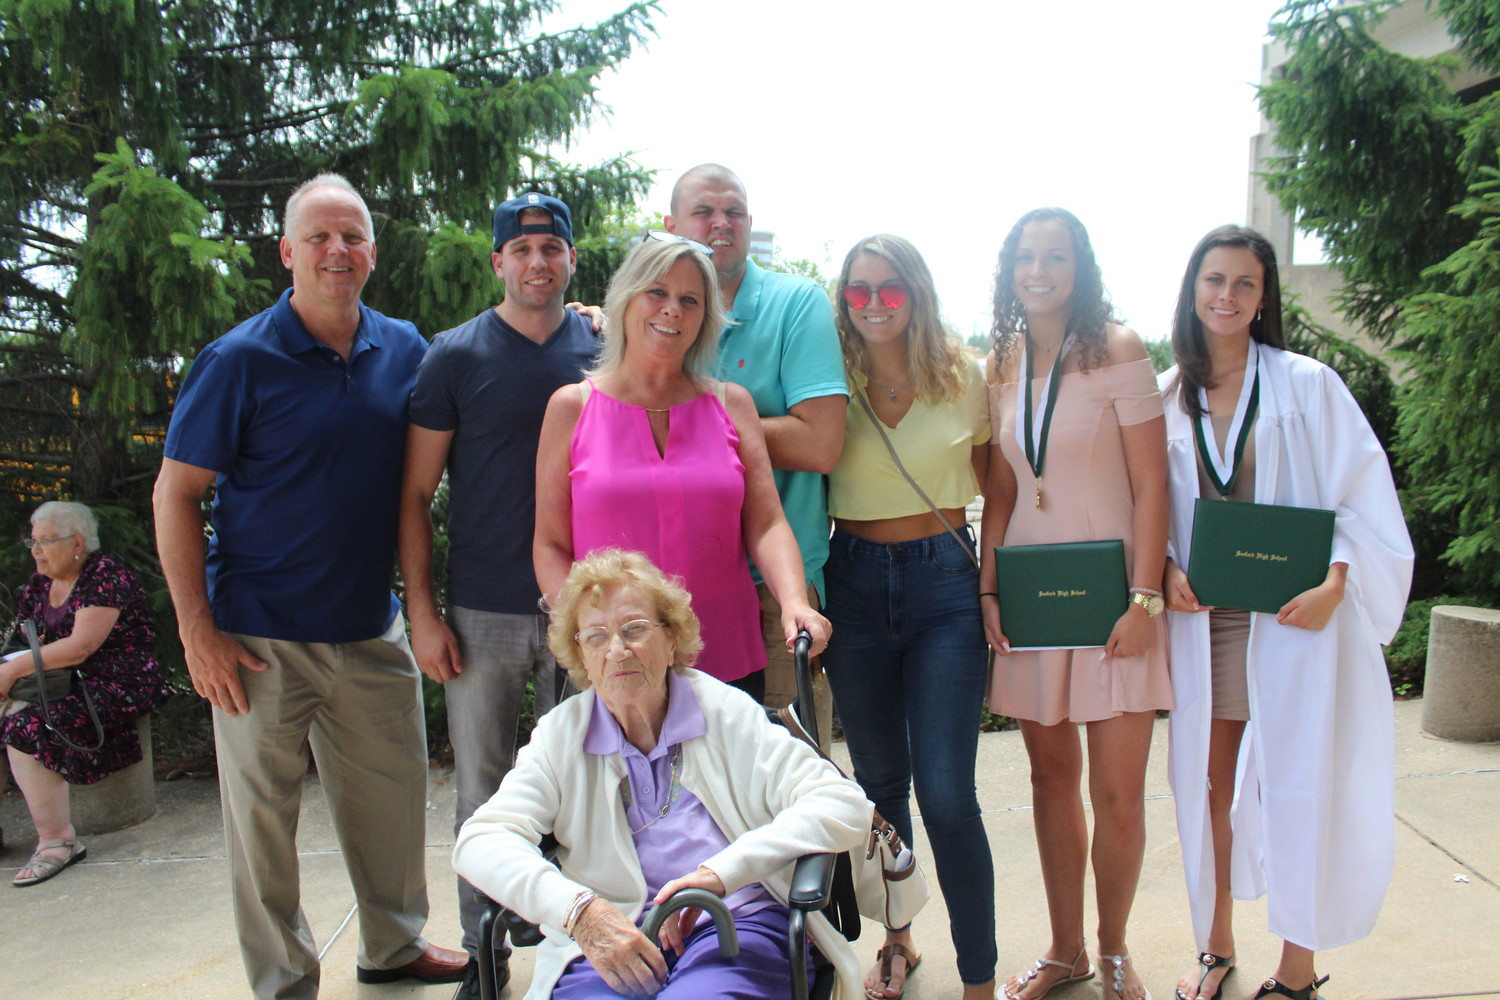 The Siler family celebrated Jenna and Julia's graduation. They are known for running Karen's Hope, a charity that provides housing and living assistance to those with developmental disabilities.